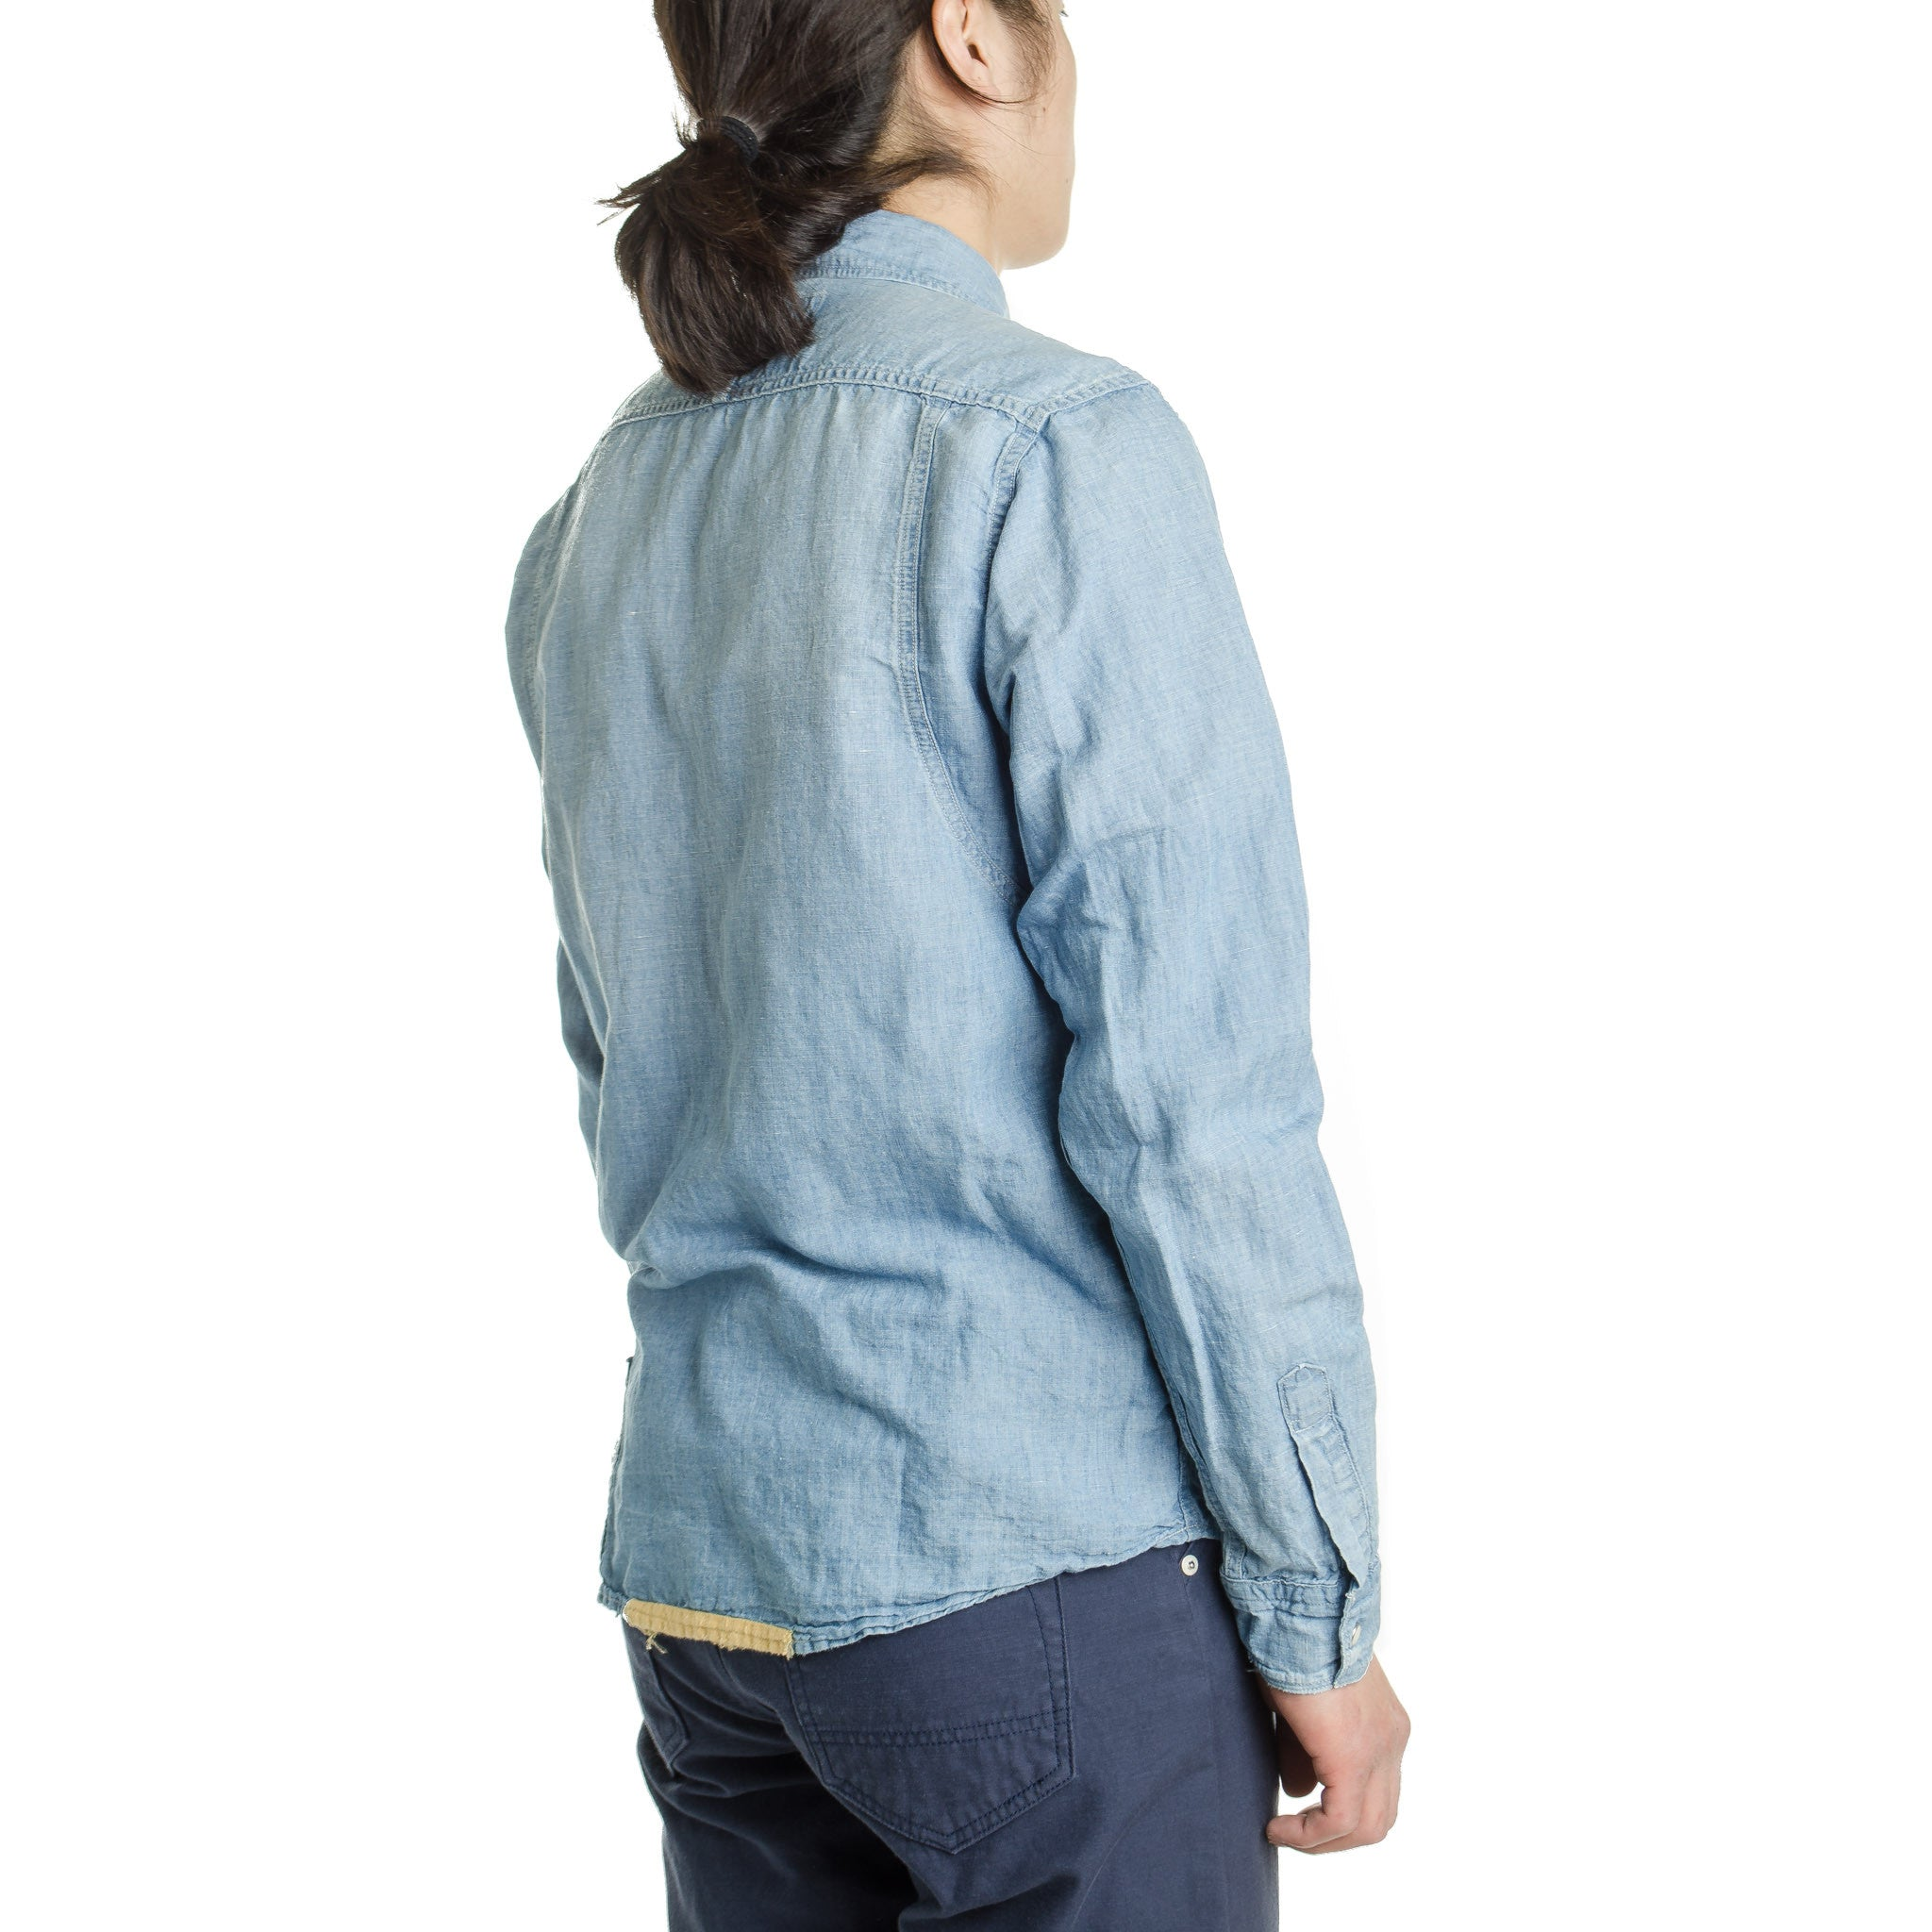 Denim Shirt 5YR Wash